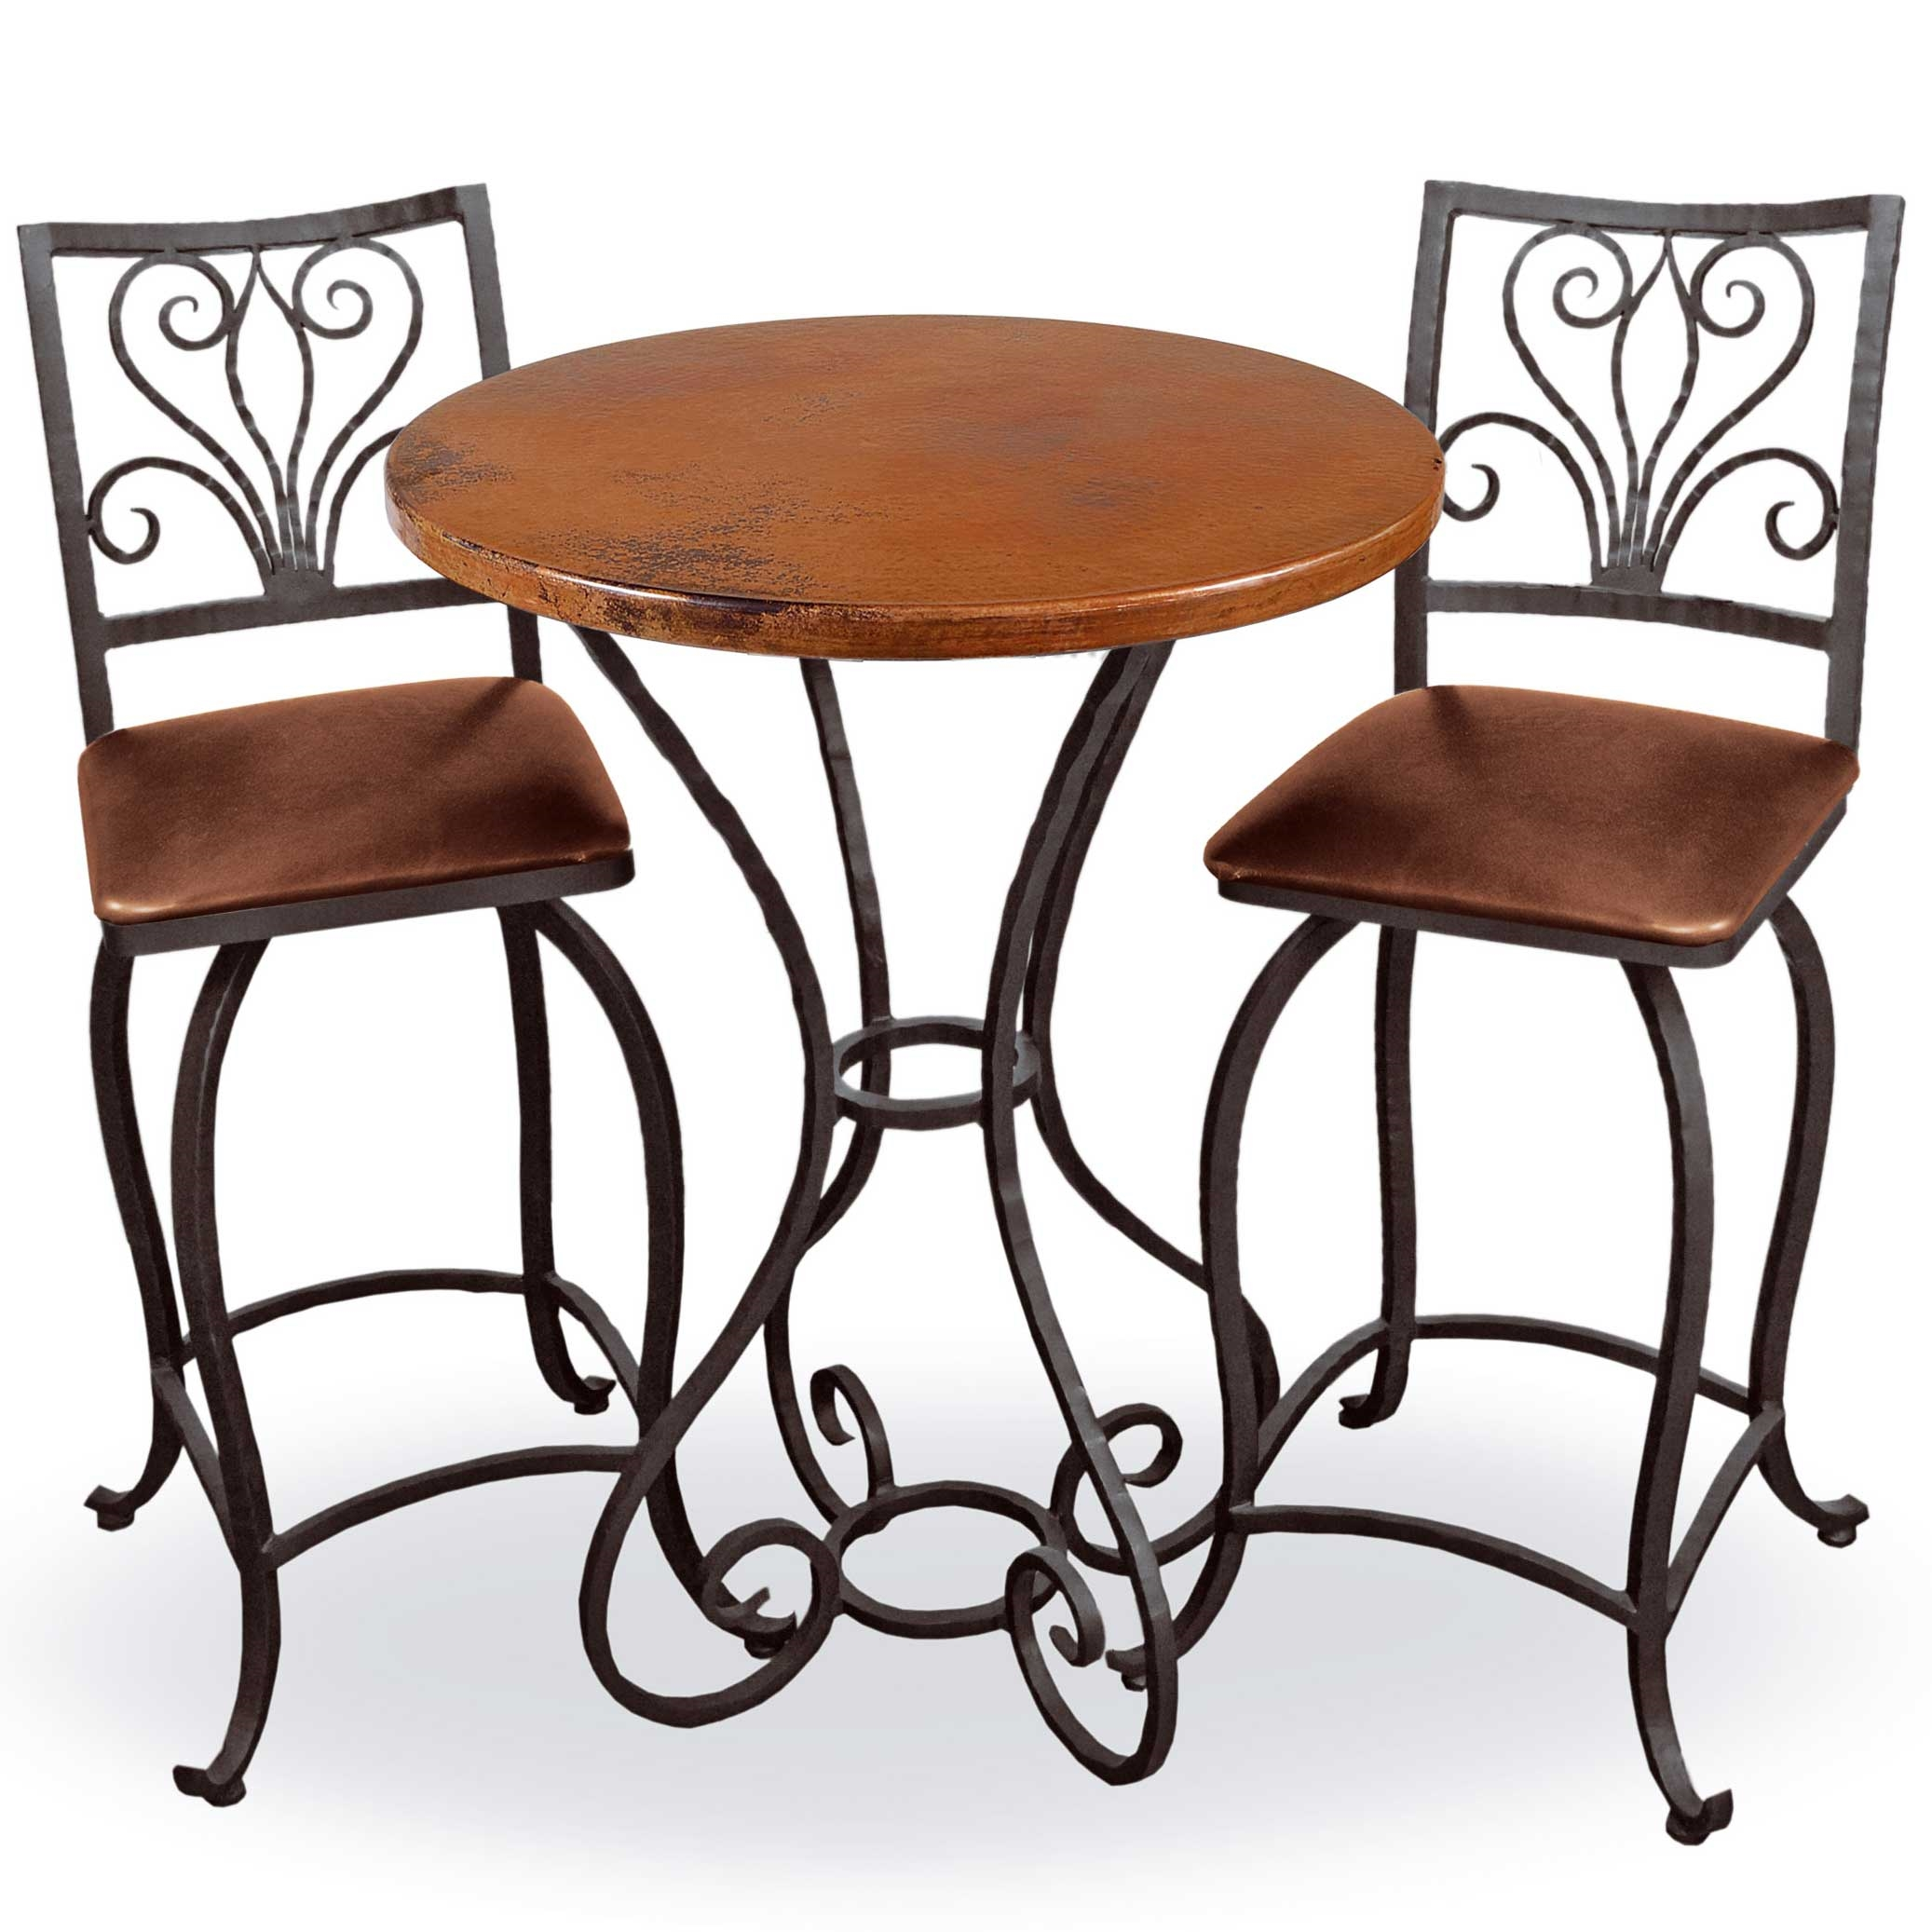 Alexander bar height table 40 in tall top and iron base finish options larger photo watchthetrailerfo